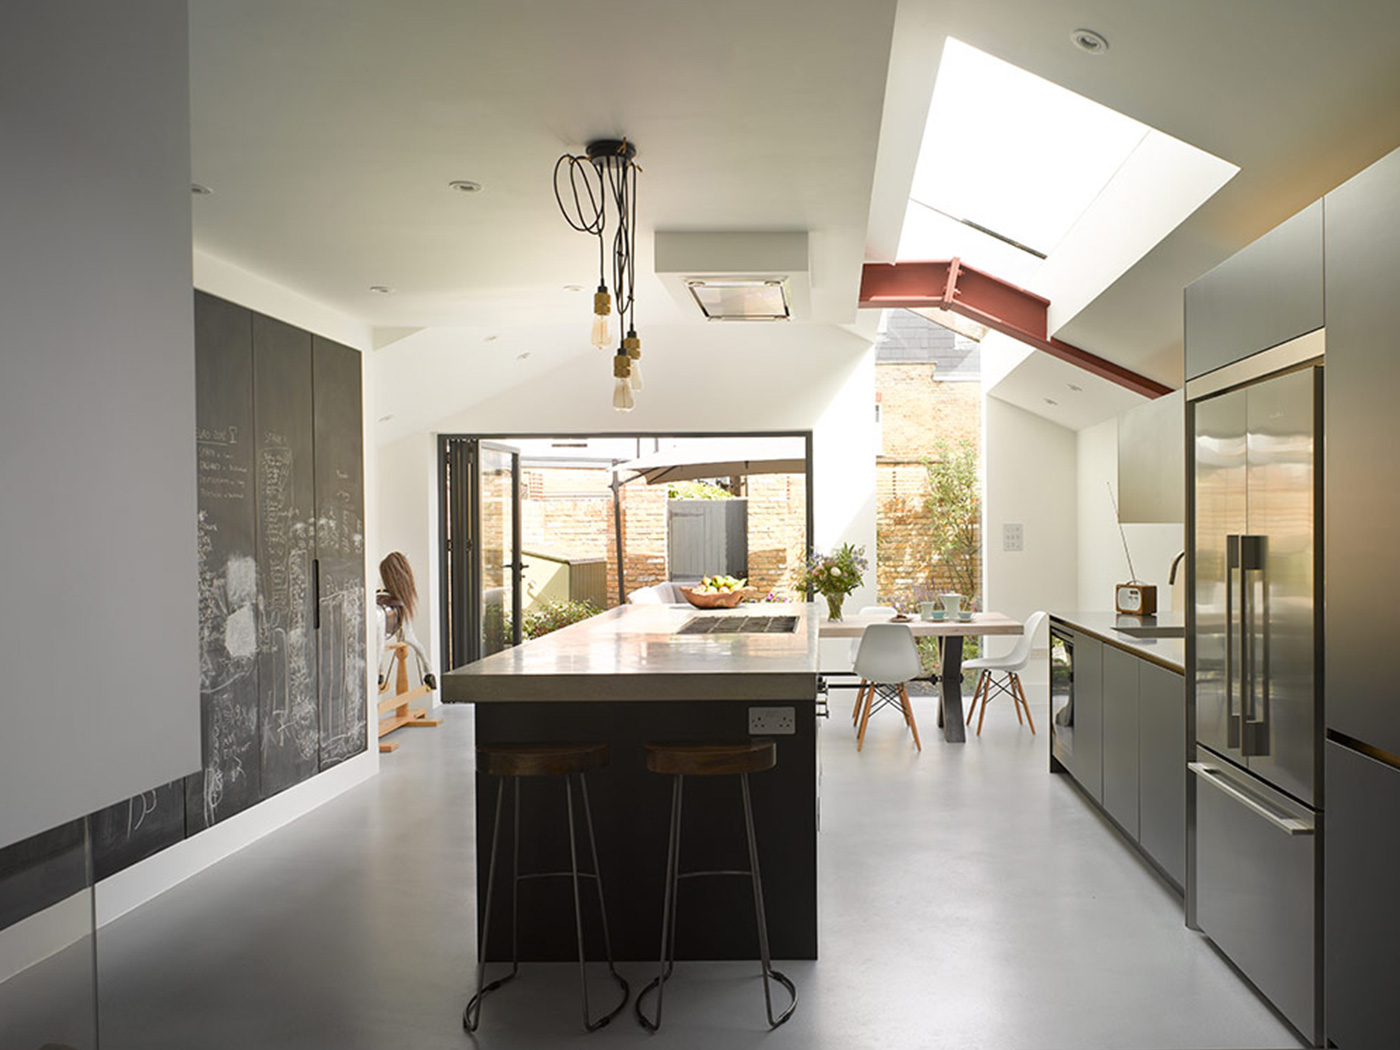 Ideas for a modern kitchen with bespoke island and concrete work surface